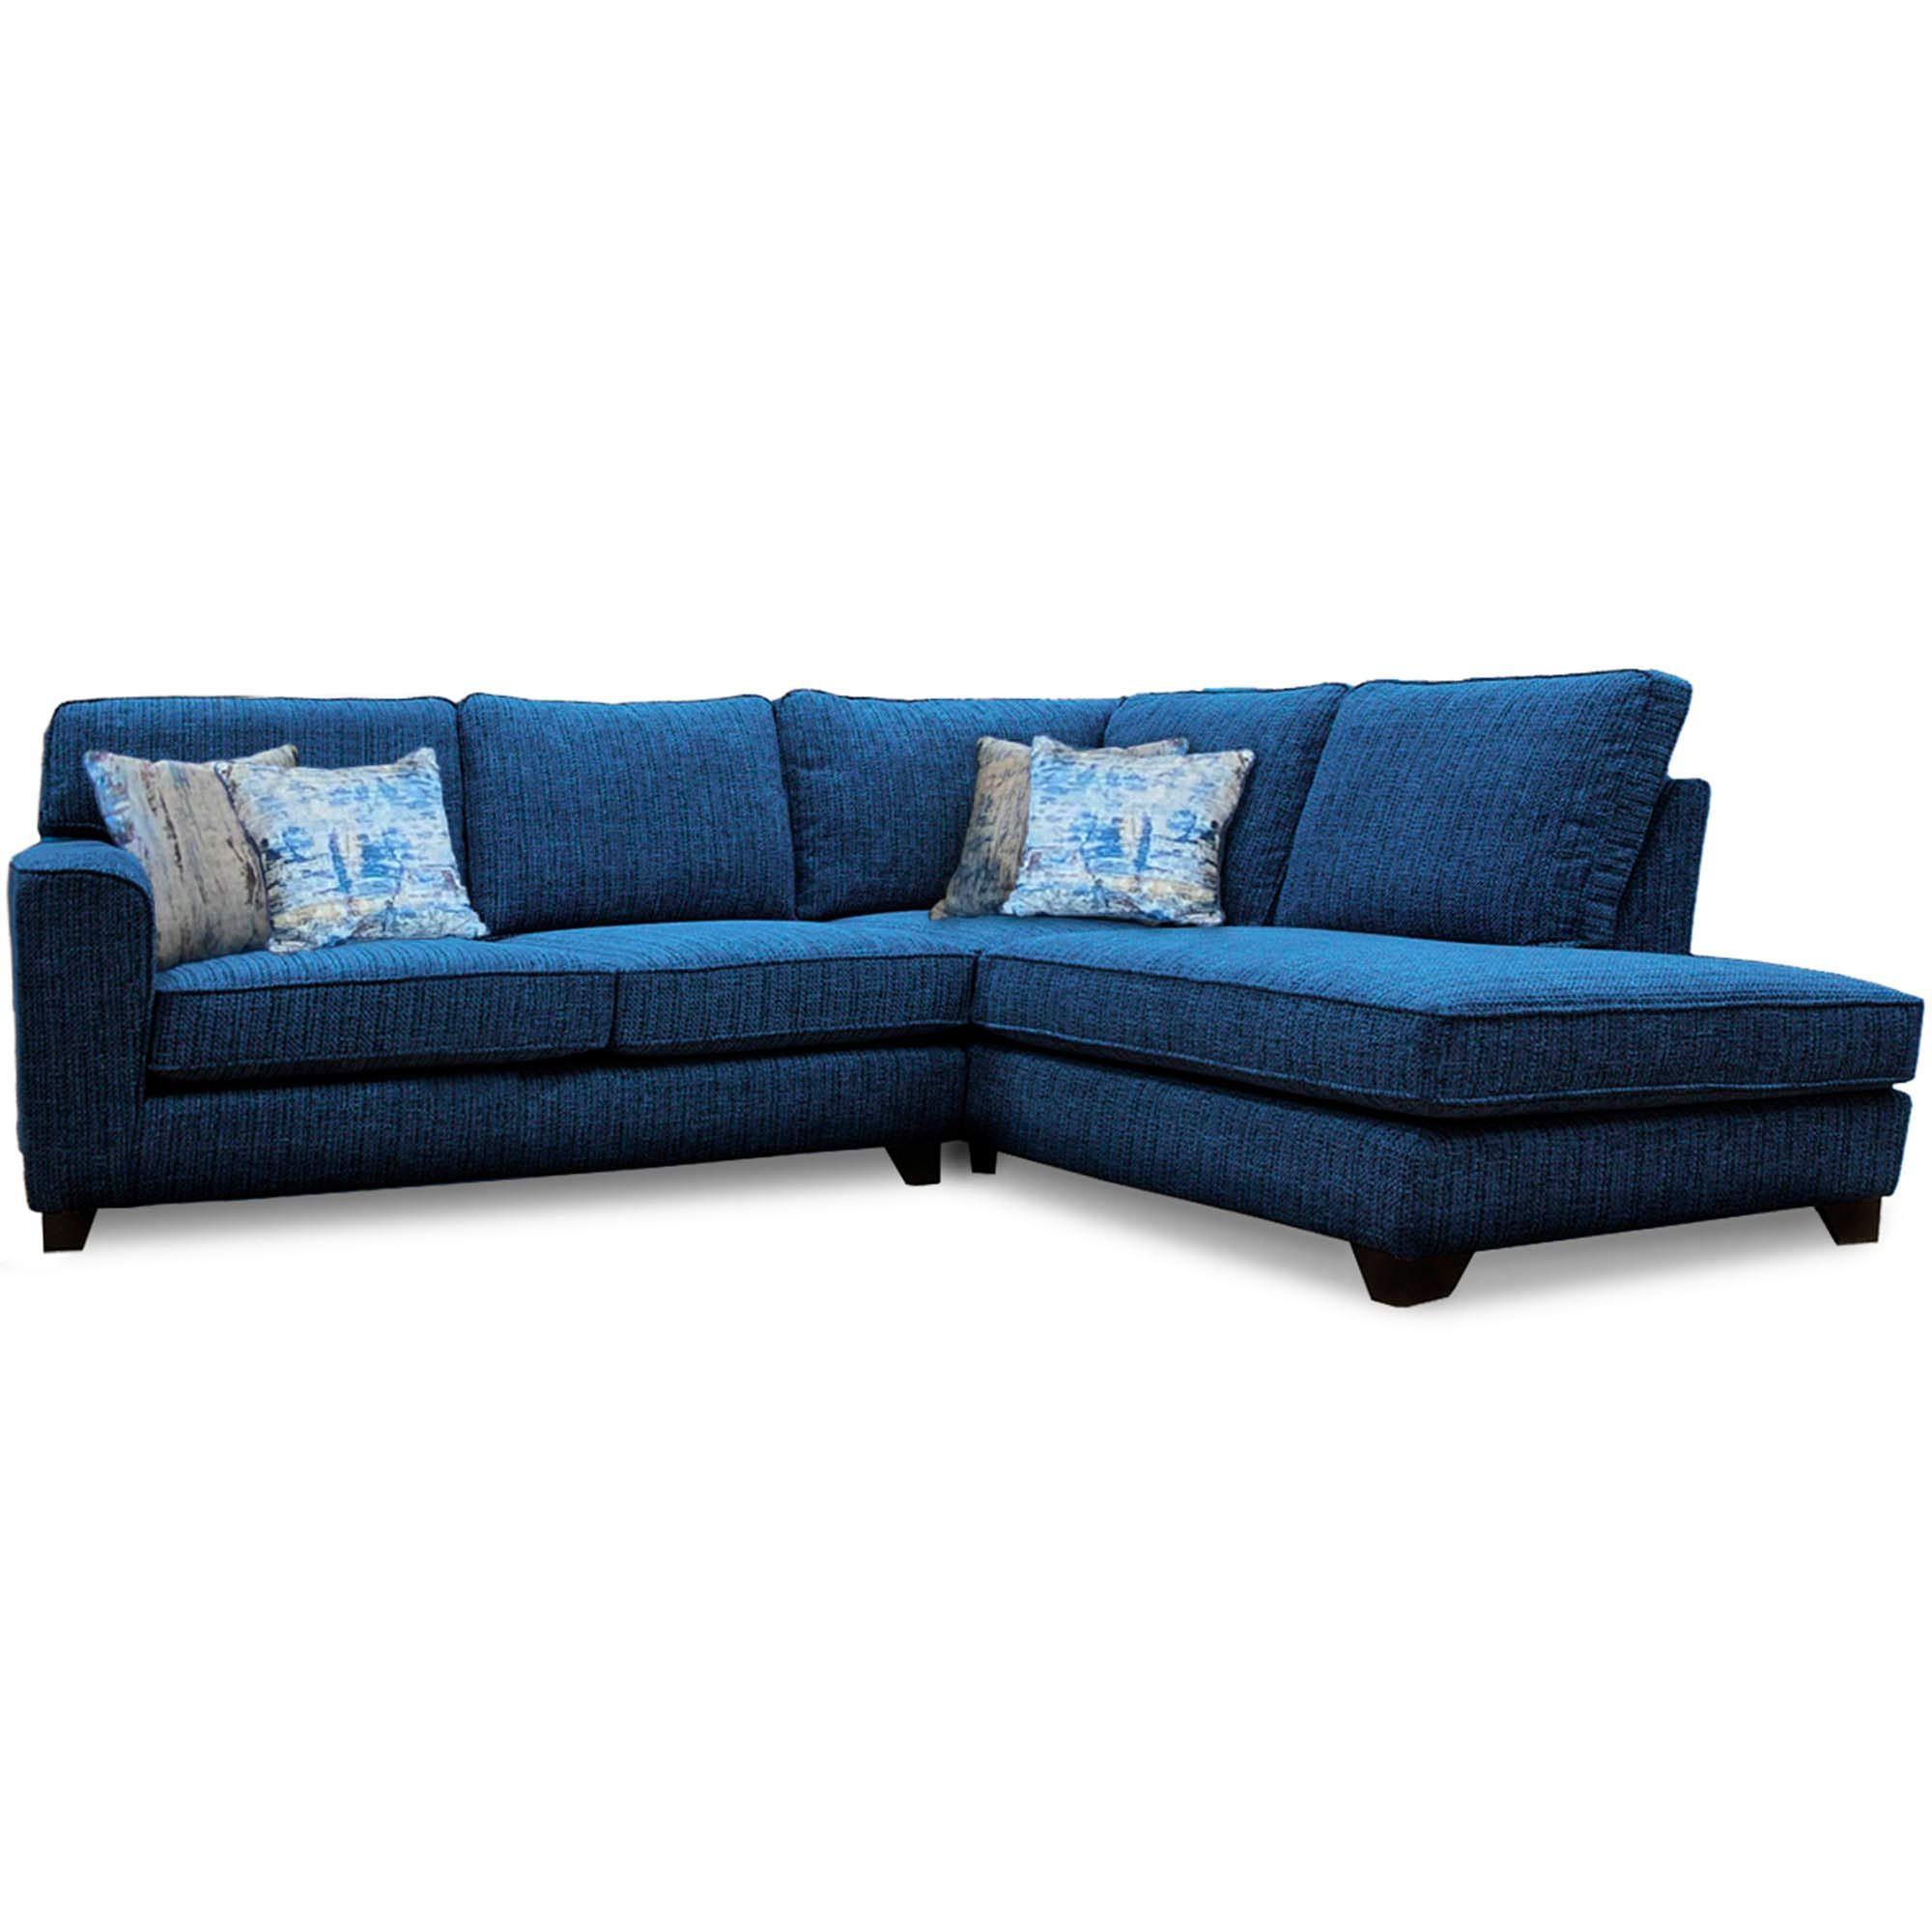 Bali 2 Seater Corner Sofa With Chaise Rhf Fabric A Meubles